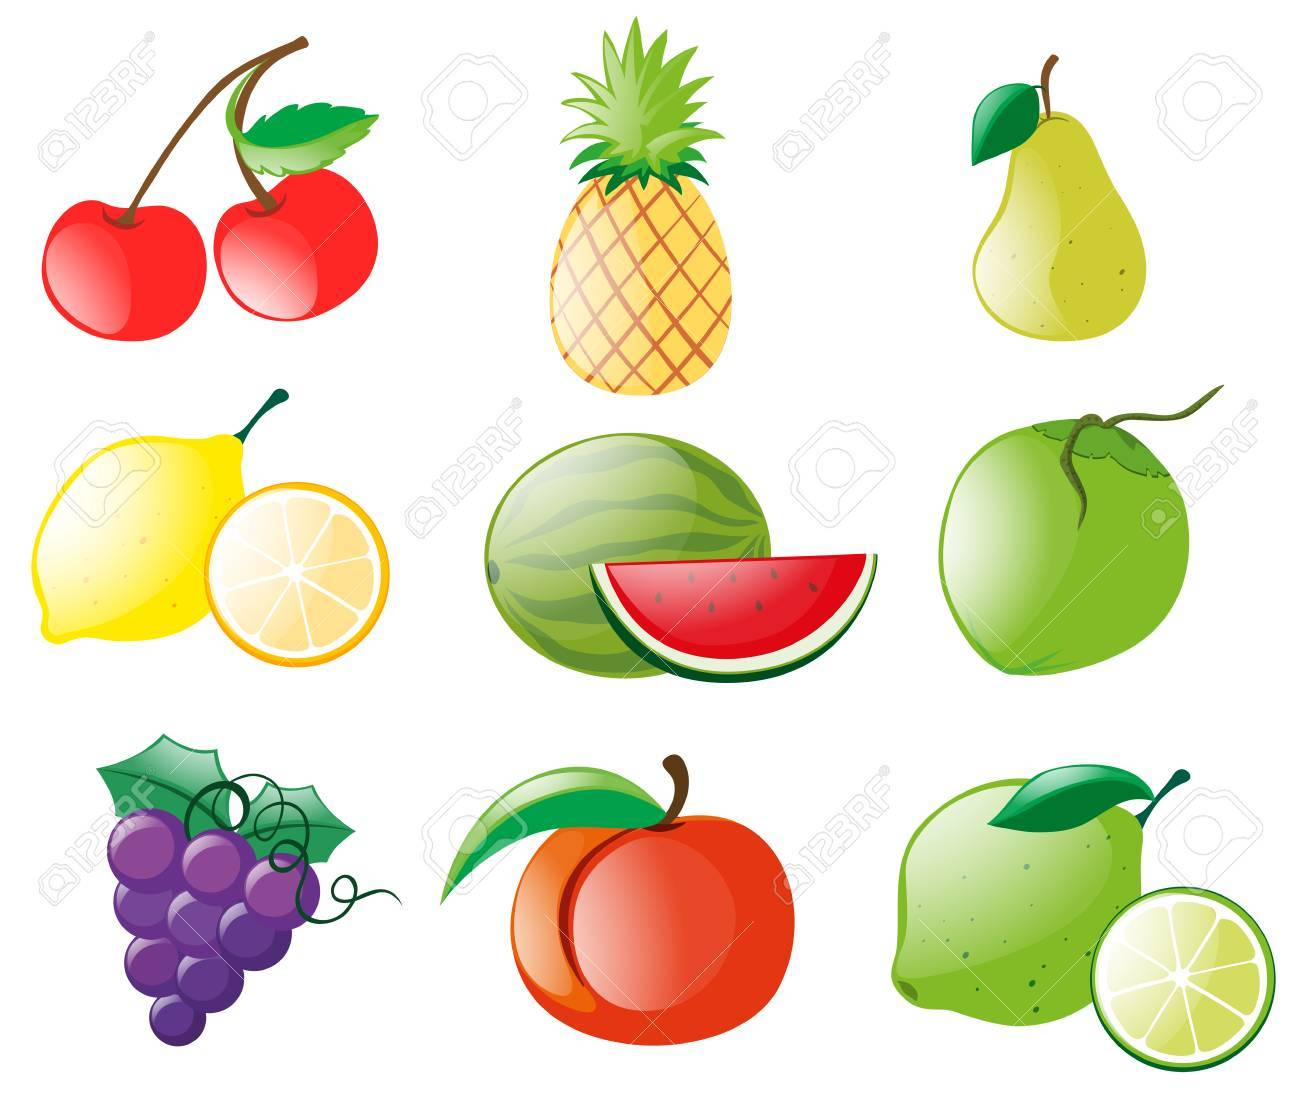 different types of fruits illustration royalty free cliparts rh 123rf com fruit vector background free fruit vectors ai